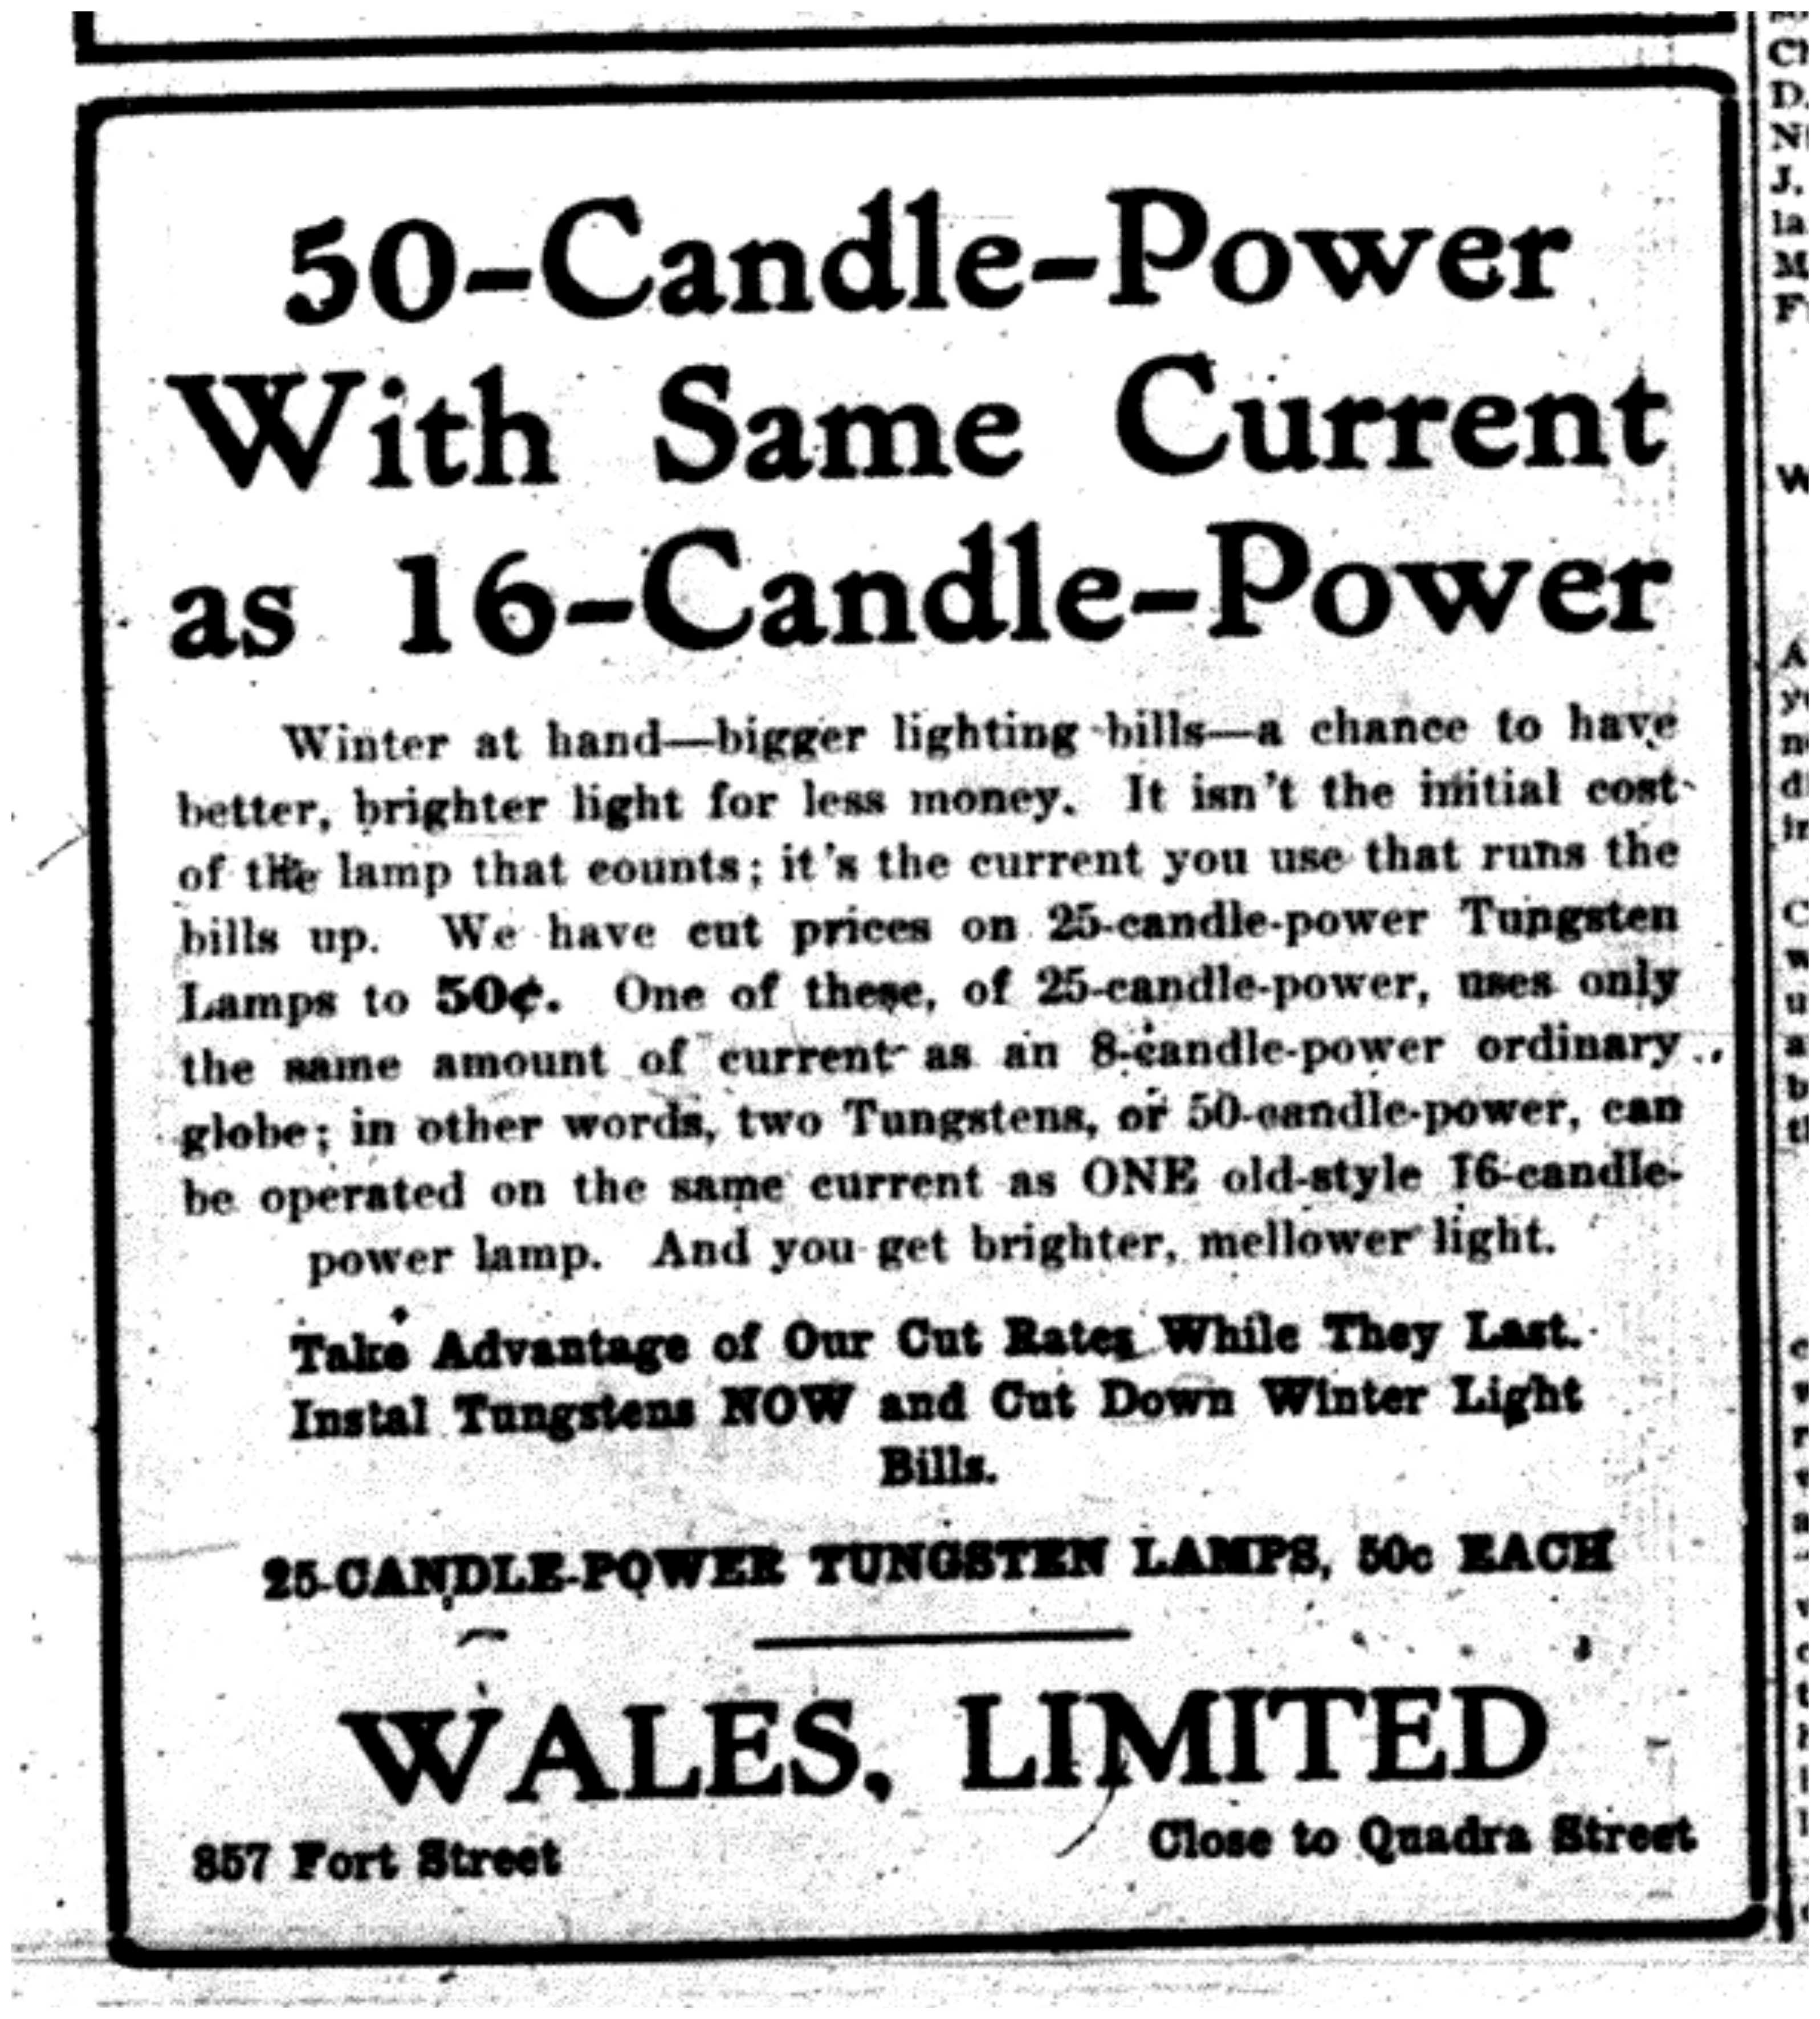 """50-Candle-Power With Same Current as 16-Candle-Power"""